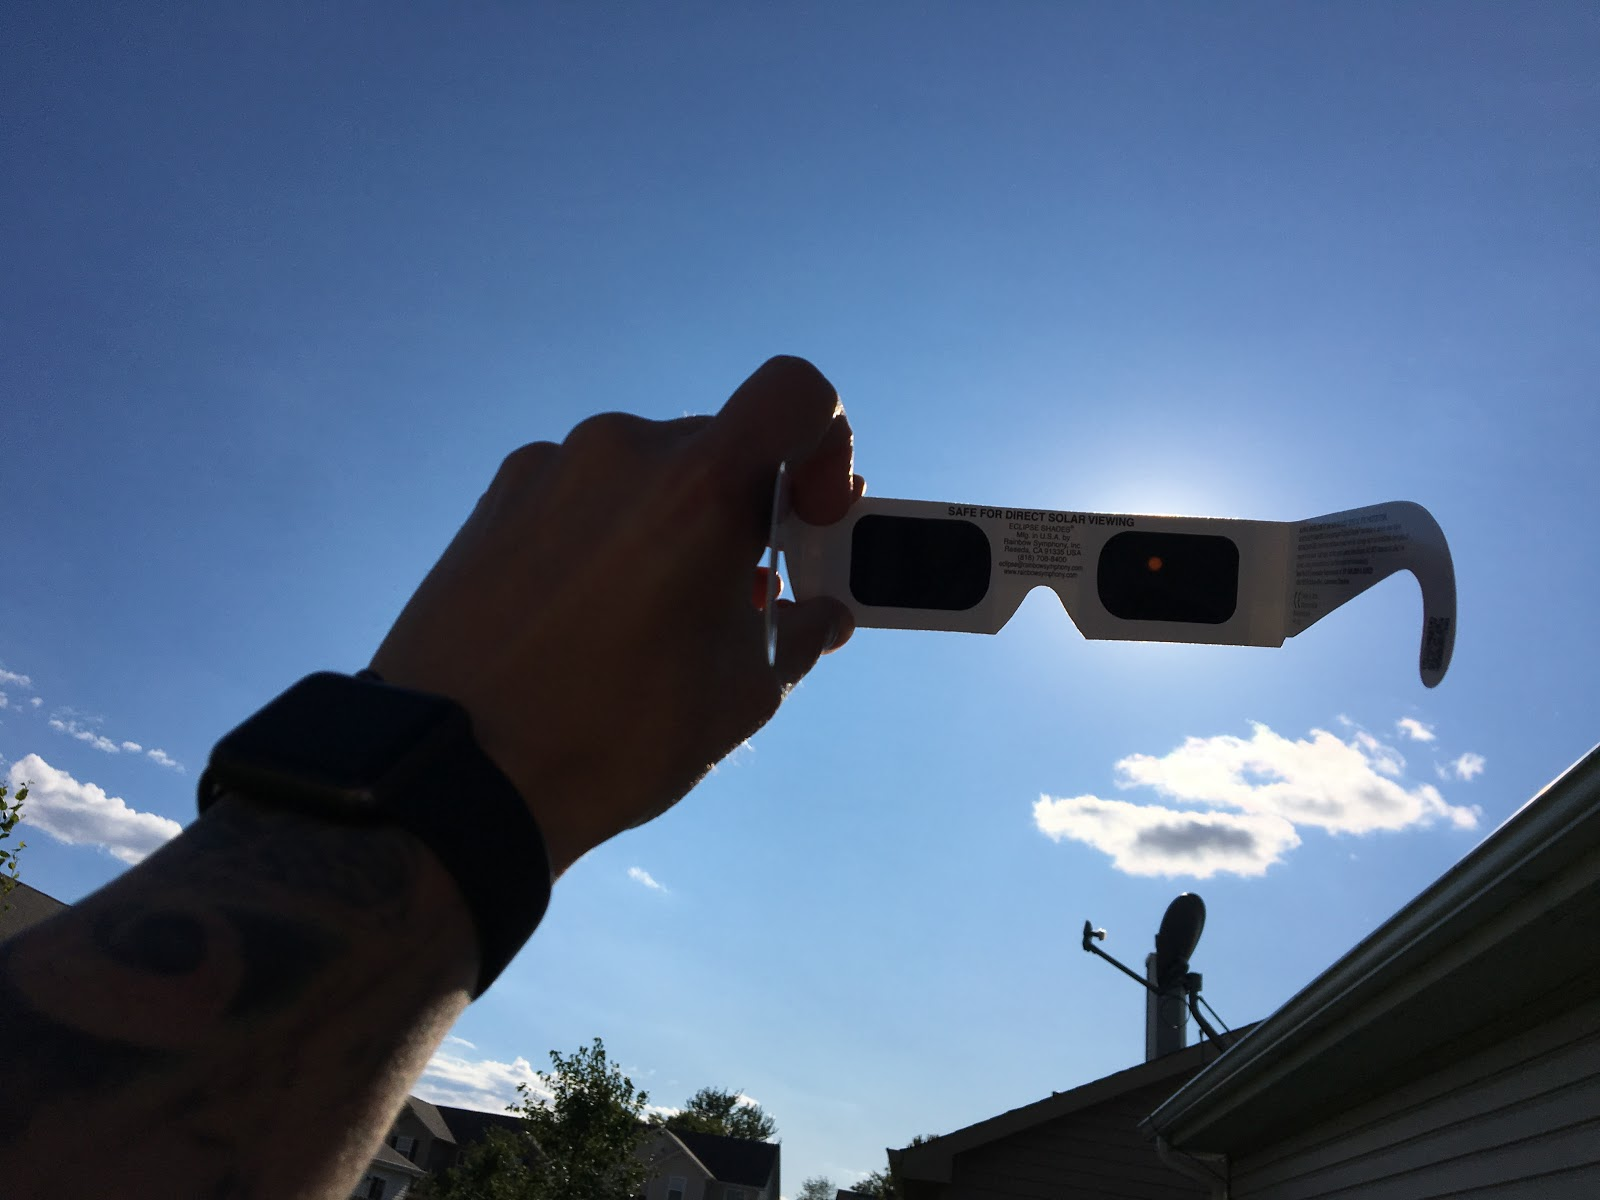 Do Solar Eclipse Glasses Fit and Work Over Regular Glasses ...